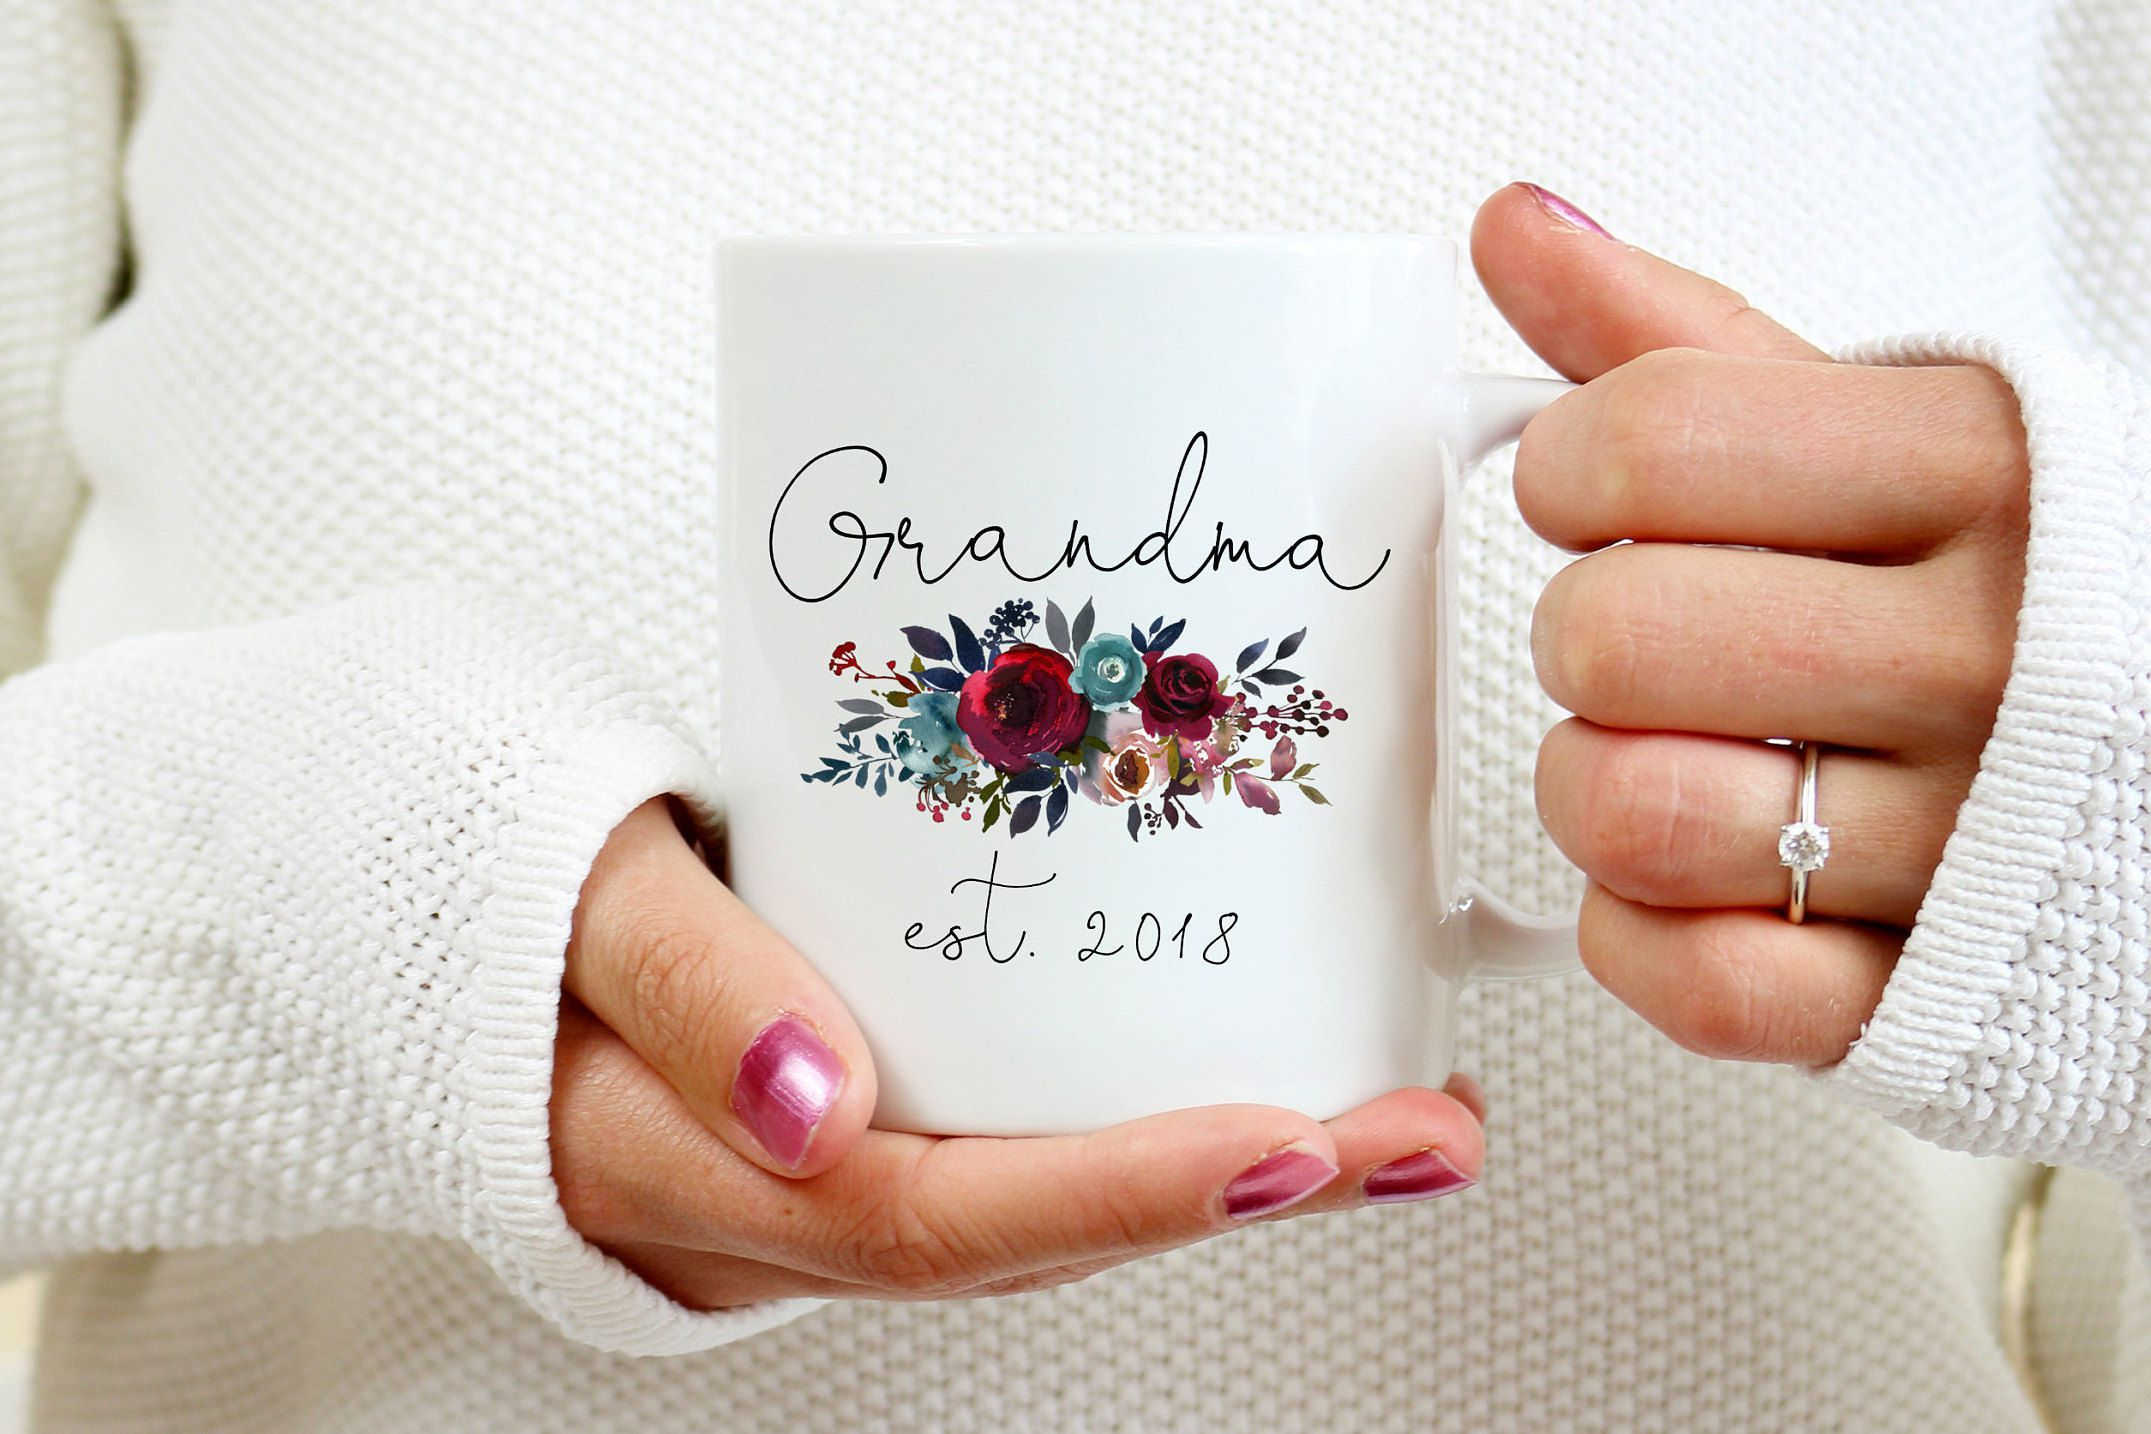 & 20 Best Motheru0027s Day Gifts for Grandmas to Show Her You Care 2019